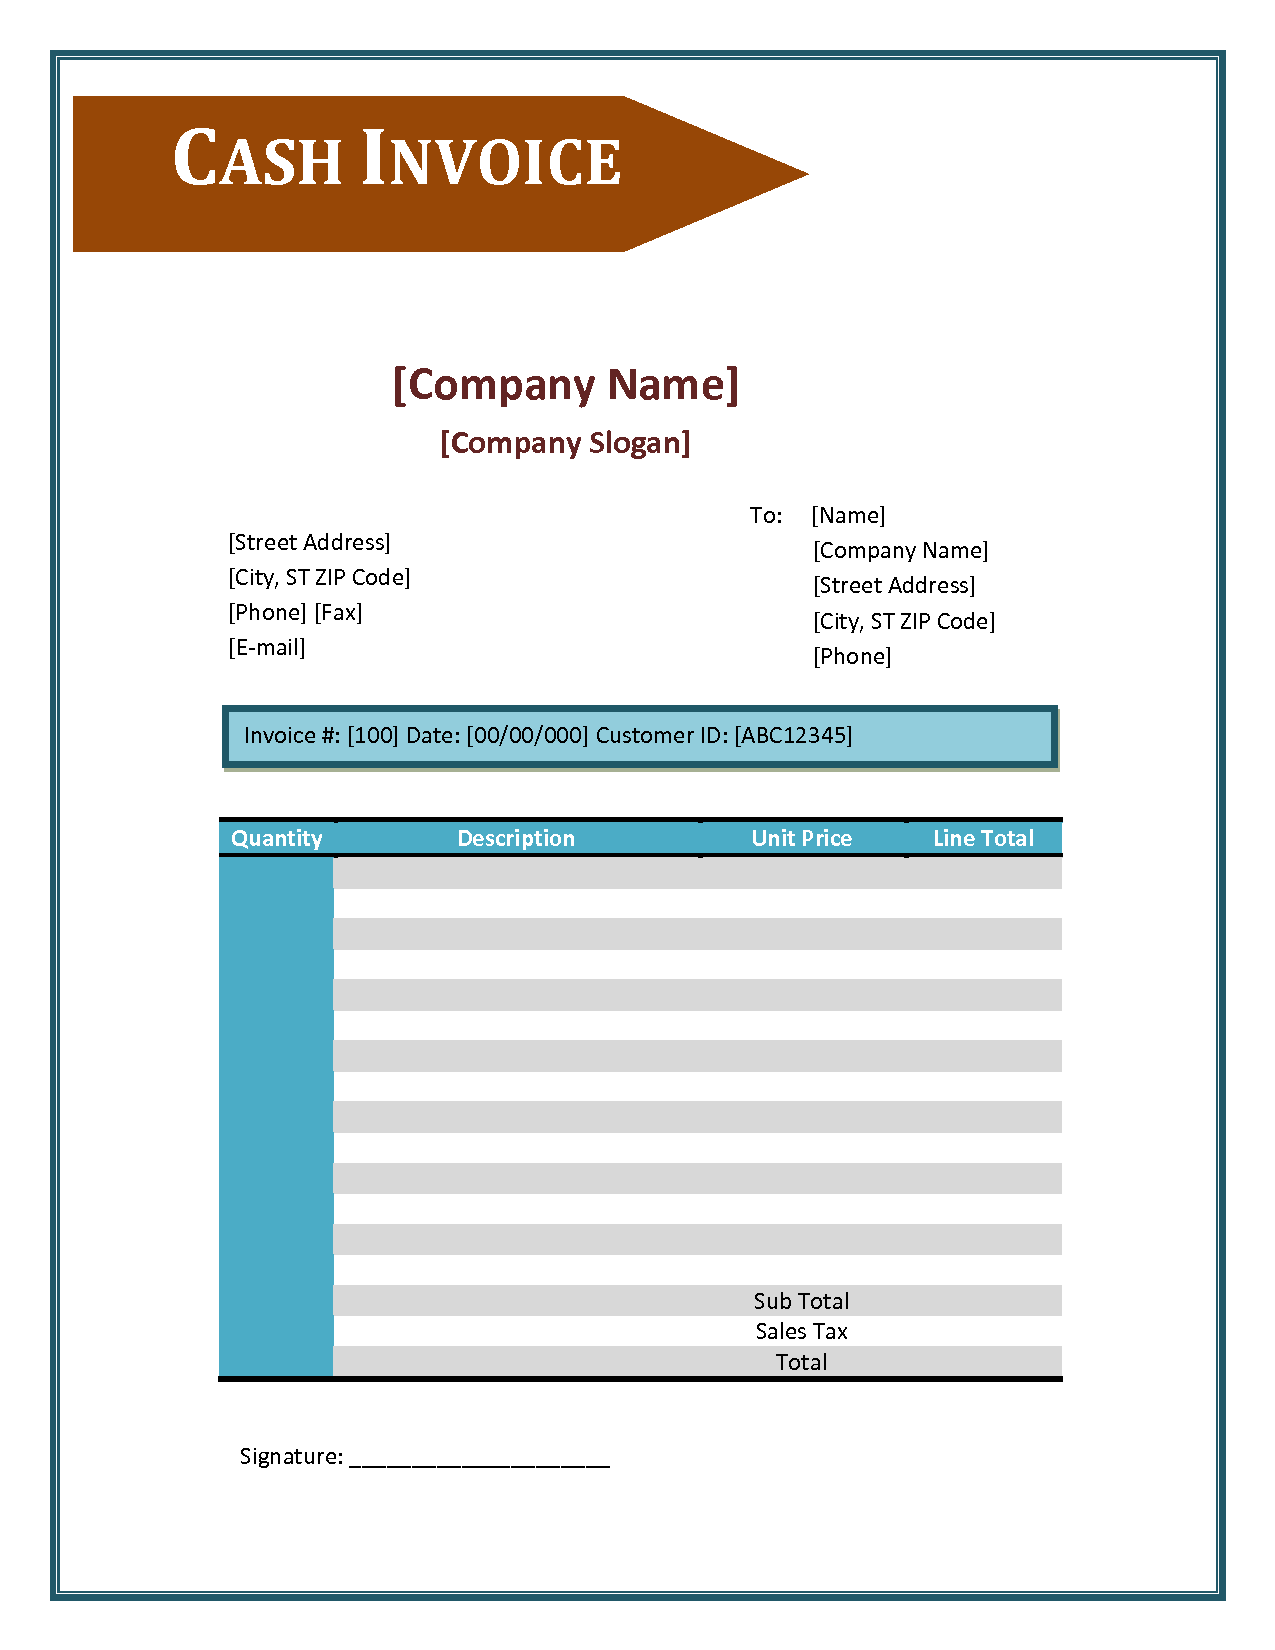 Cash Invoice Template – Cash Sale Invoice Template